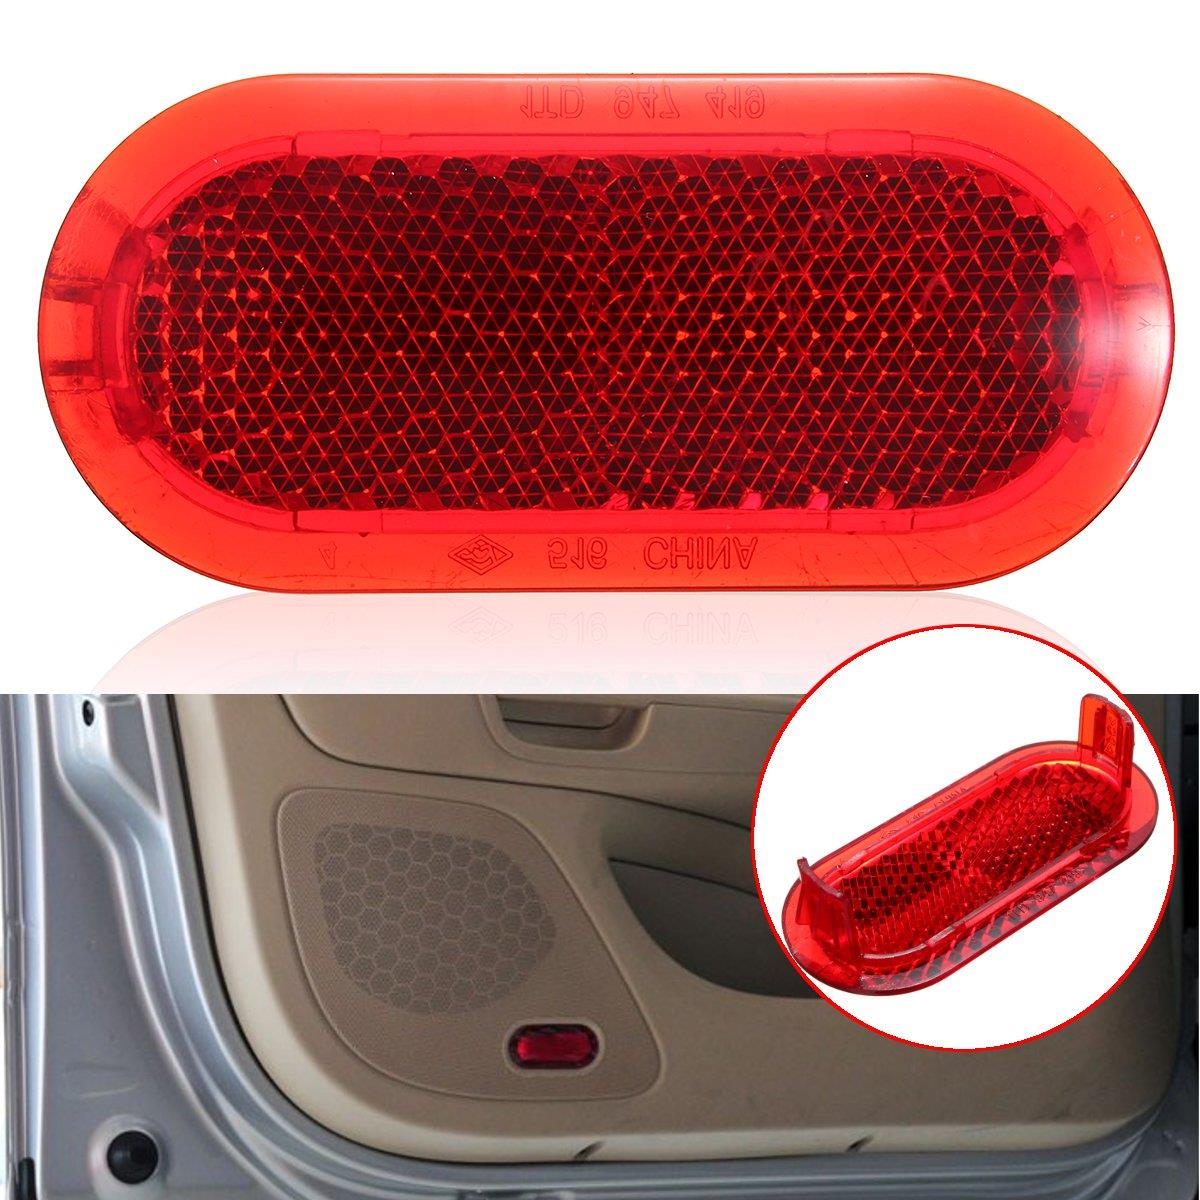 1pcs Car Auto Door Interior Courtesy Door Red Warning Light Reflector For Vw Beetle Caddy Polo